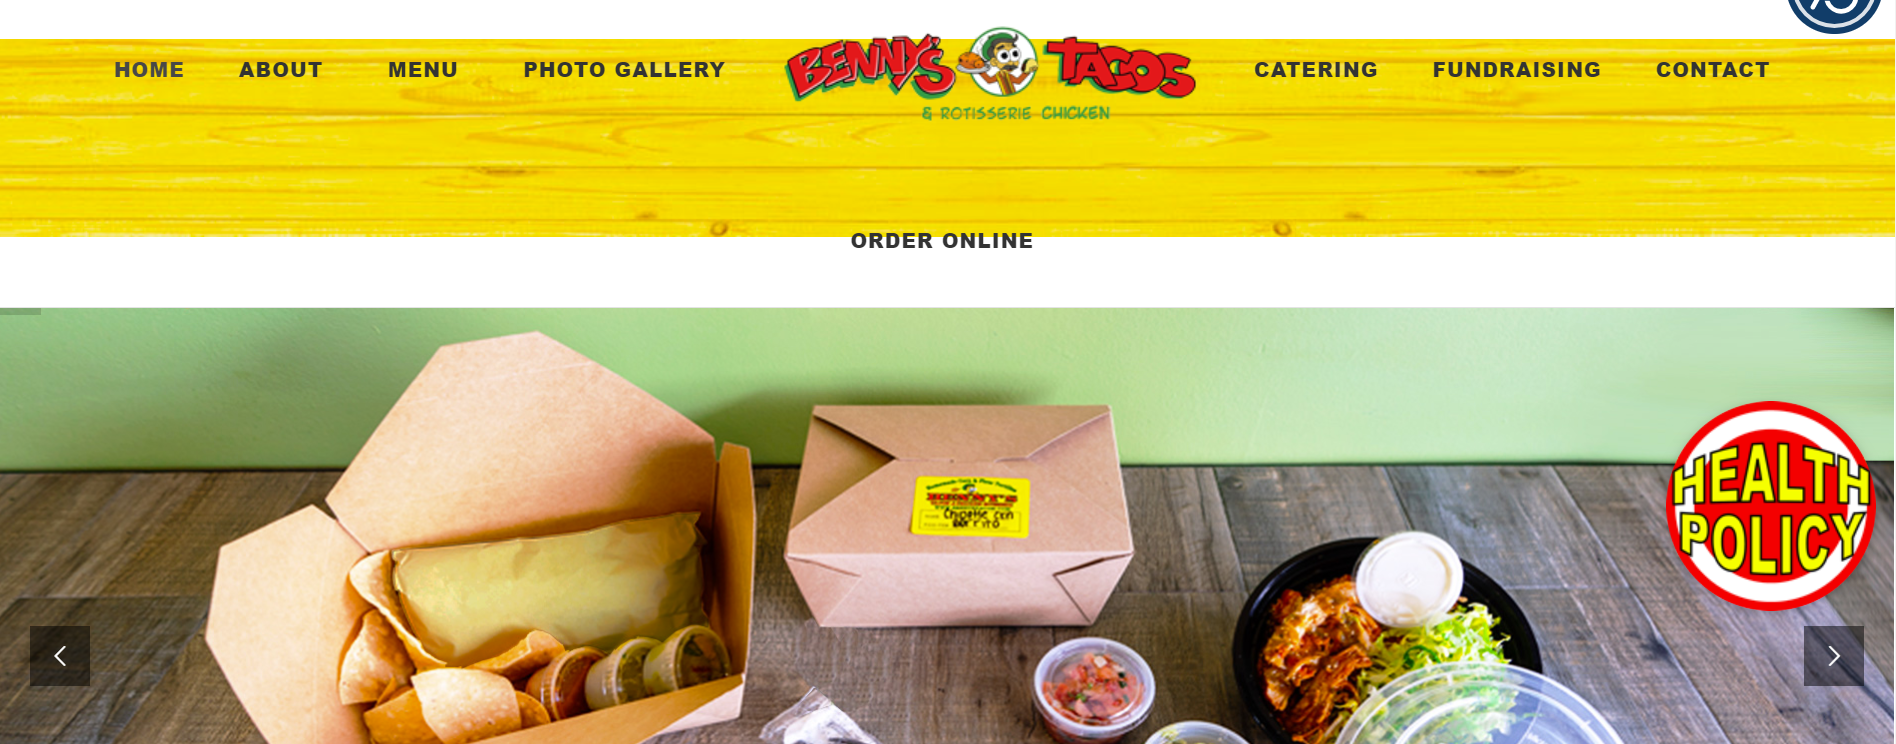 Benny's Tacos homepage